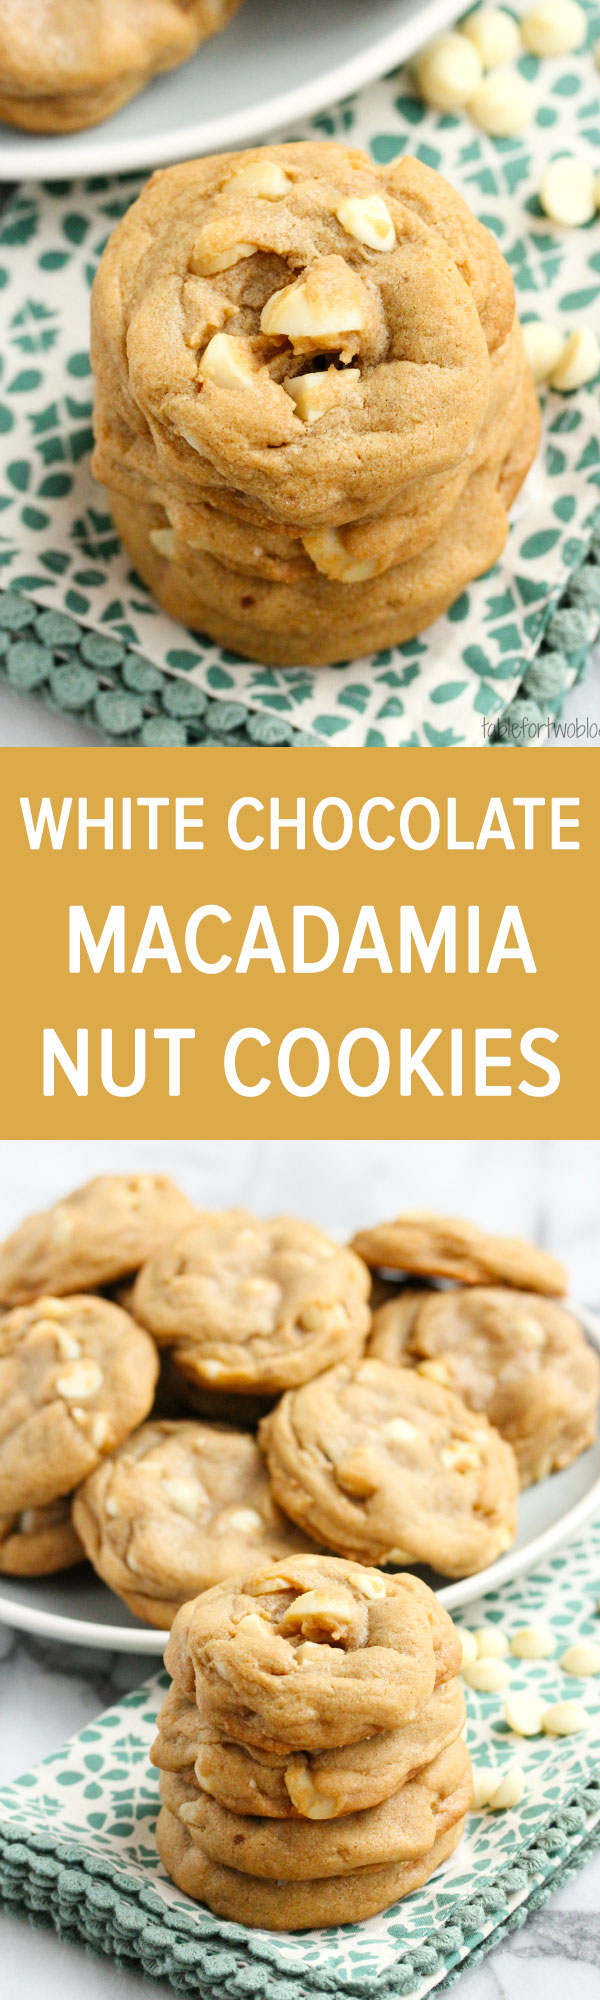 Macadamia Nut White Chocolate Chip Cookies from tablefortwoblog.com